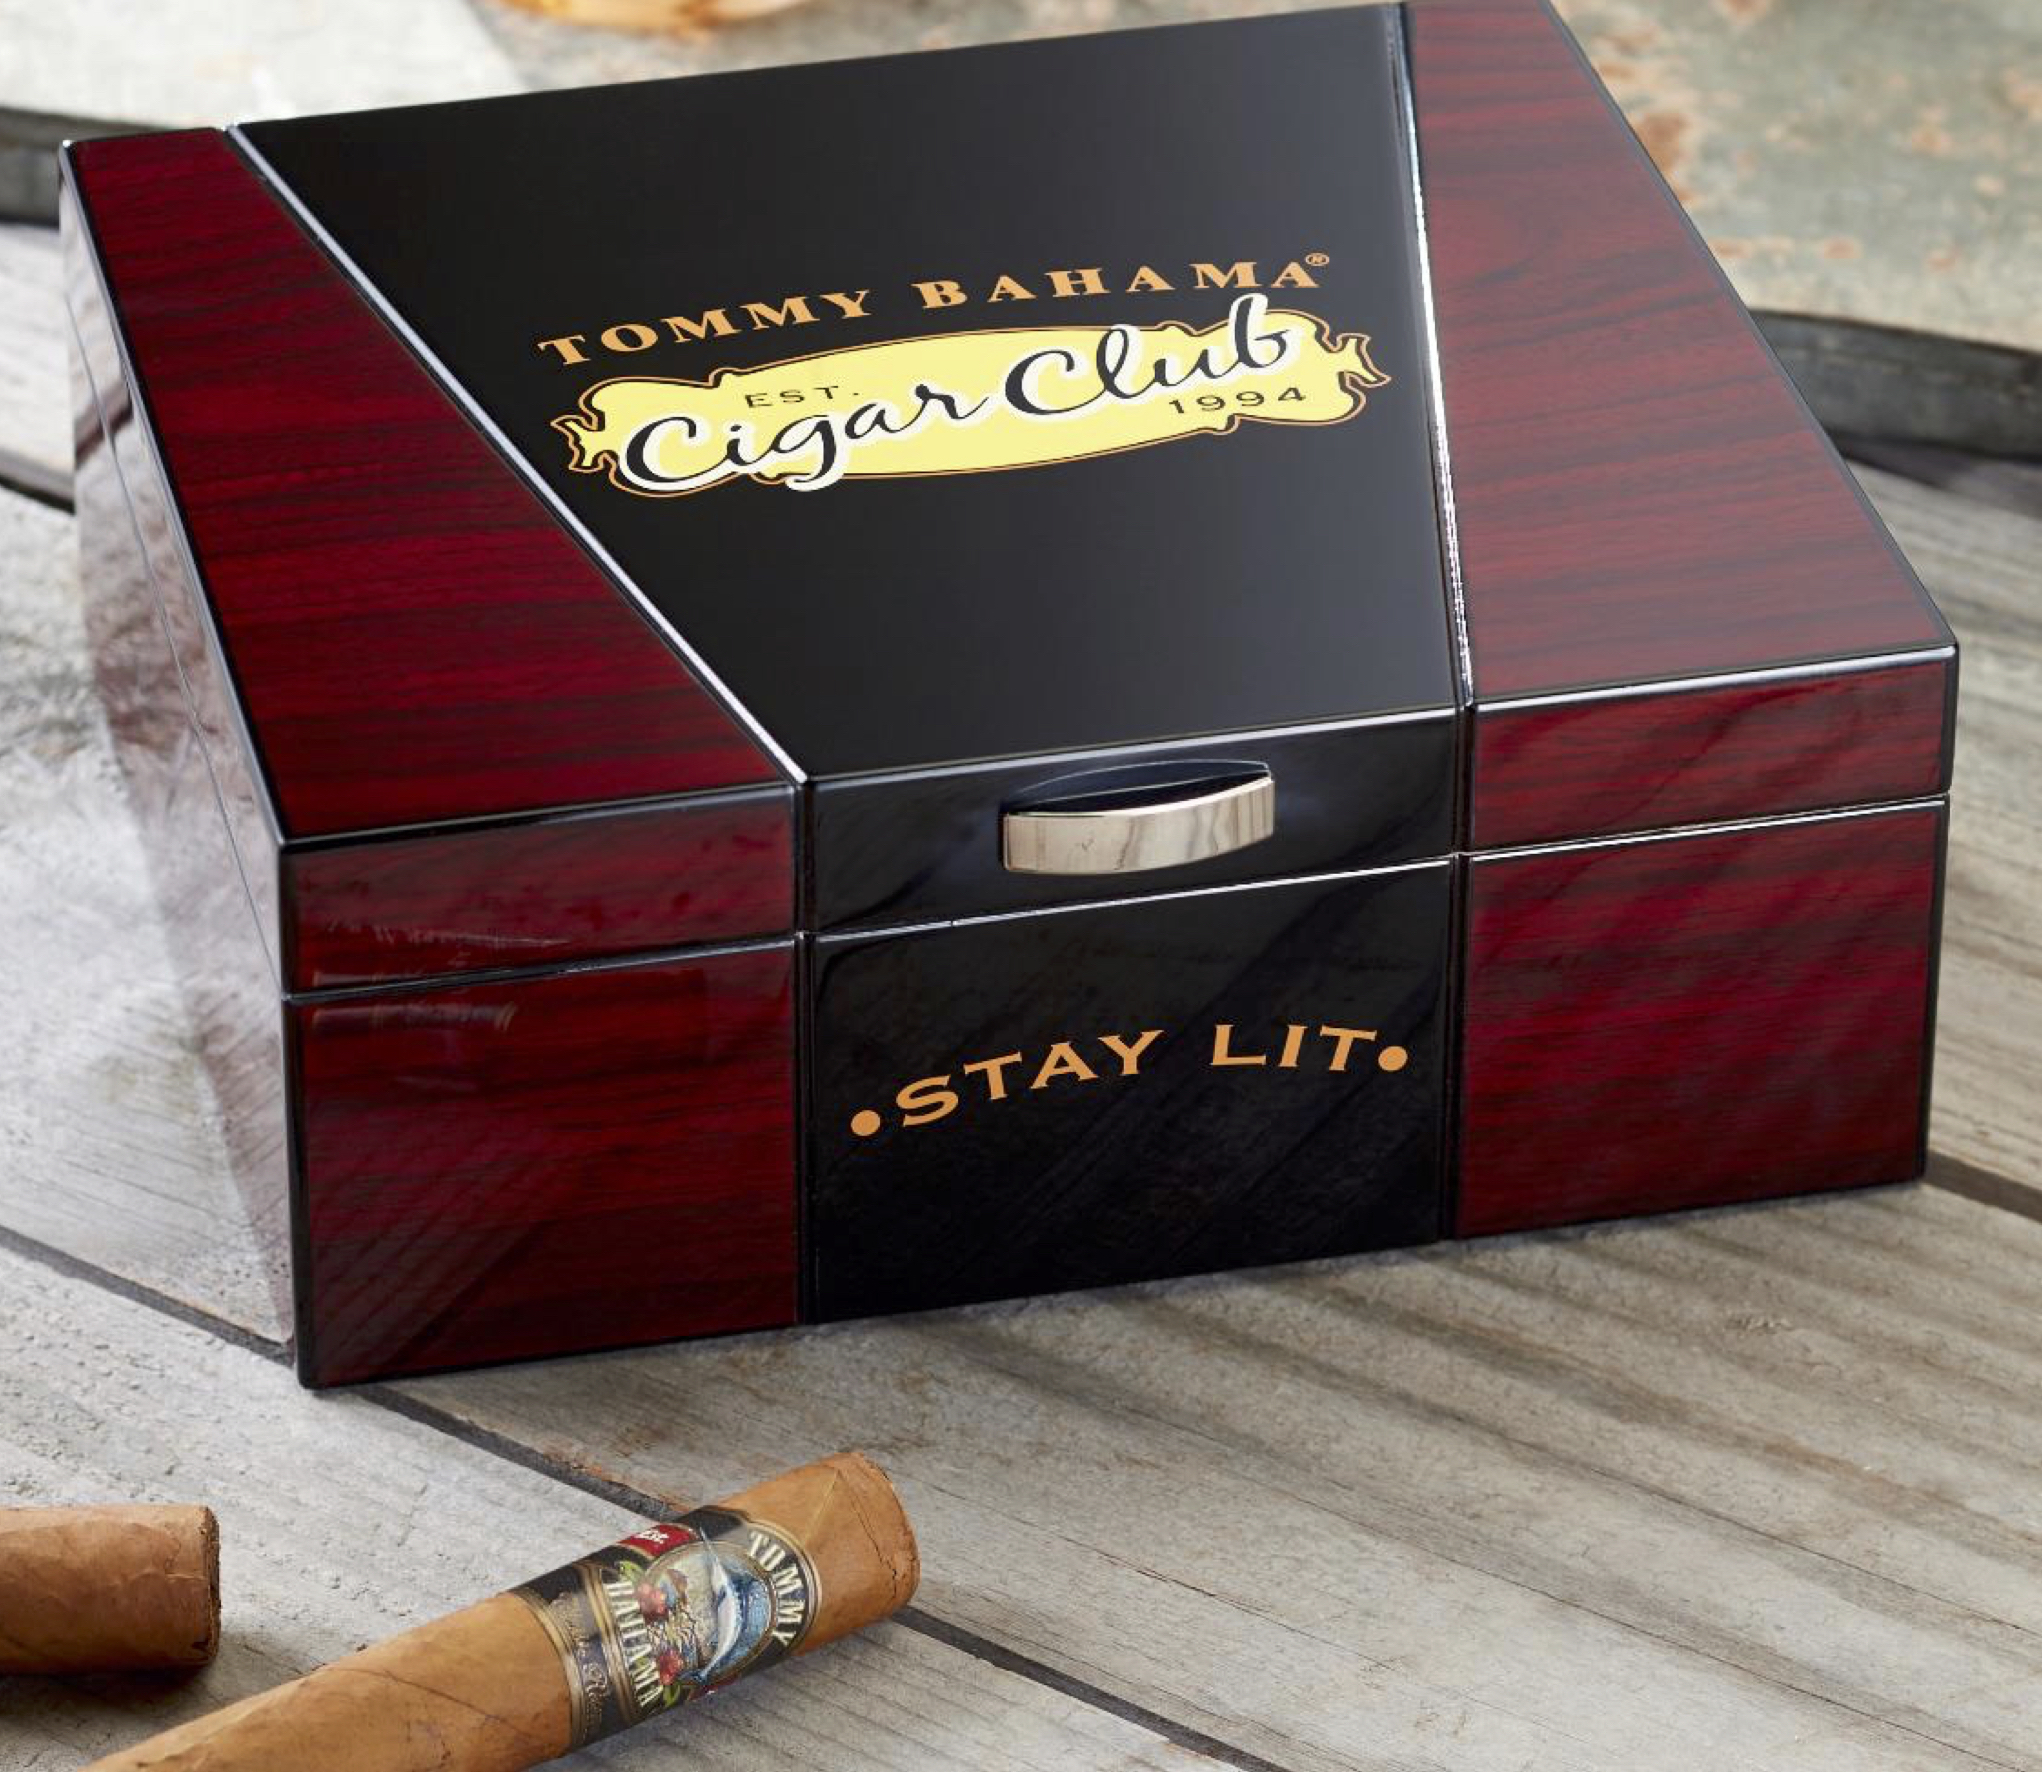 Tommy Bahama Cigar Club Desktop Humidor